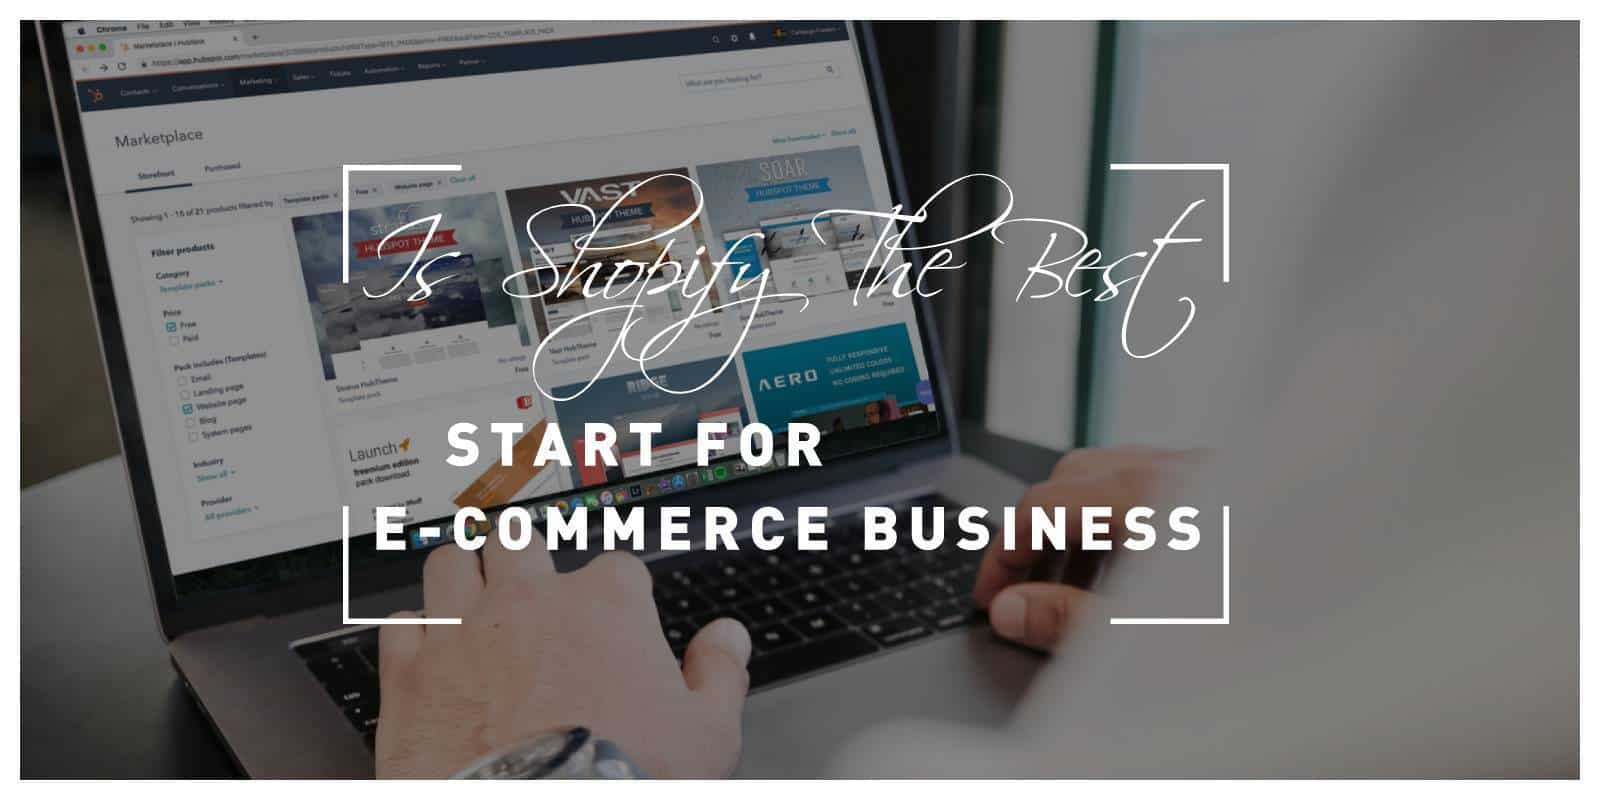 Is Shopify the Best Start for E-Commerce Business